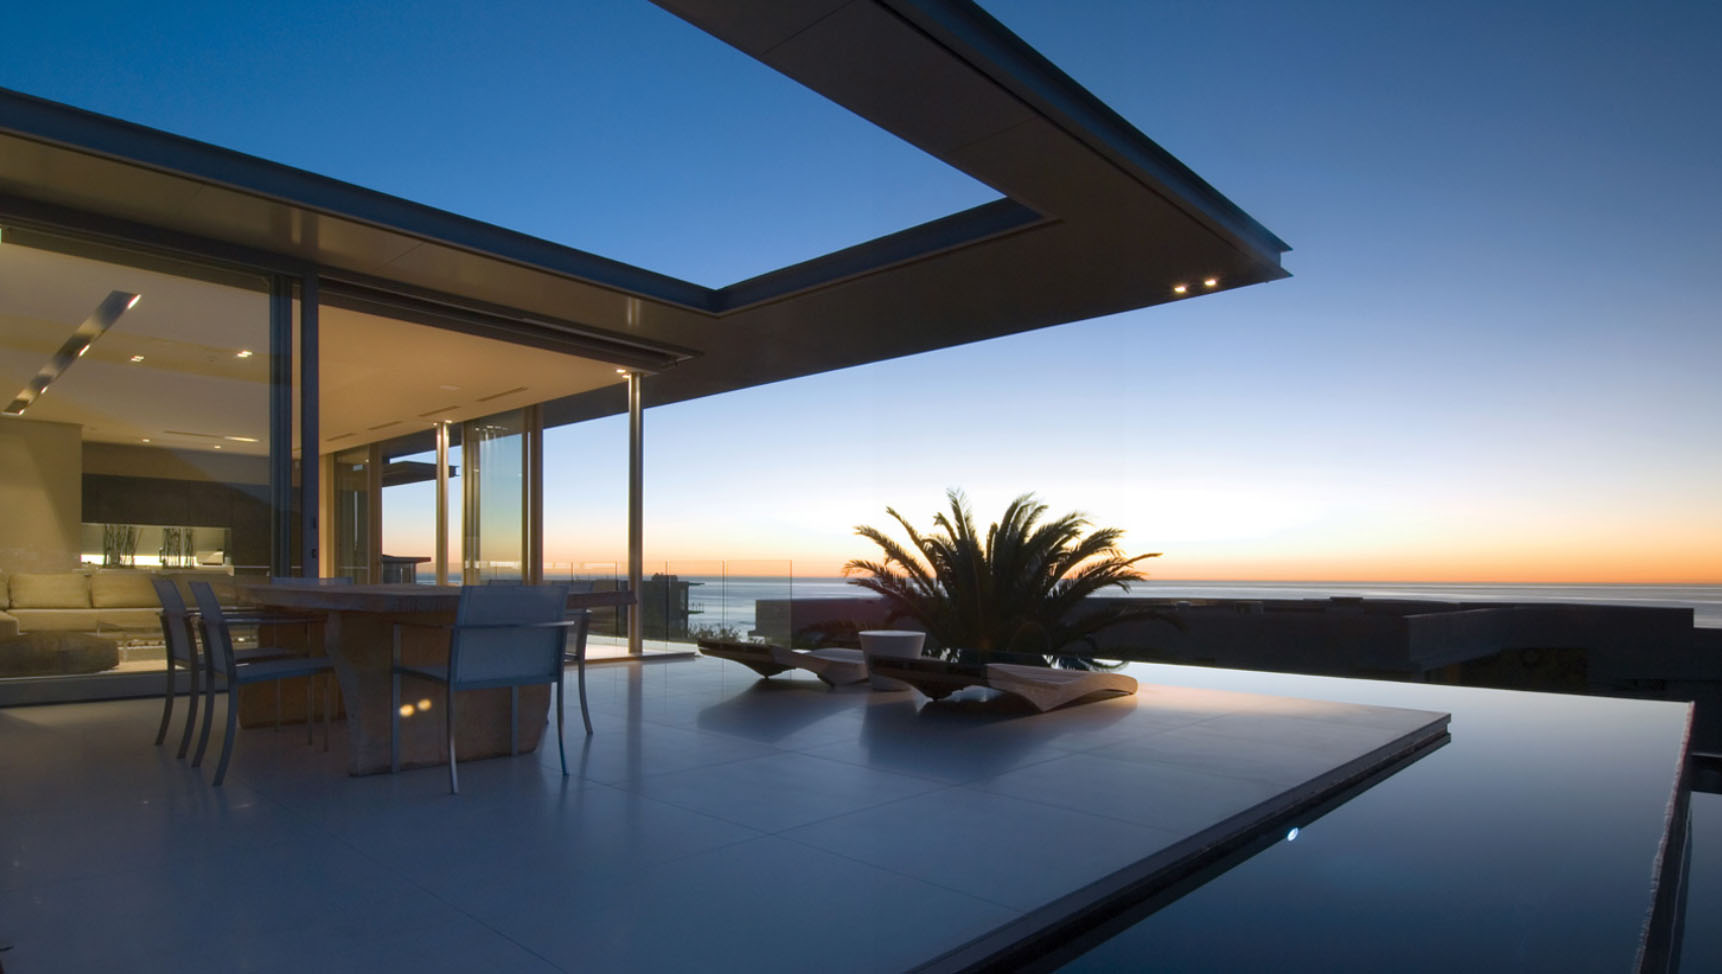 Minimalist ocean view home in south africa idesignarch for Luxury minimalist house